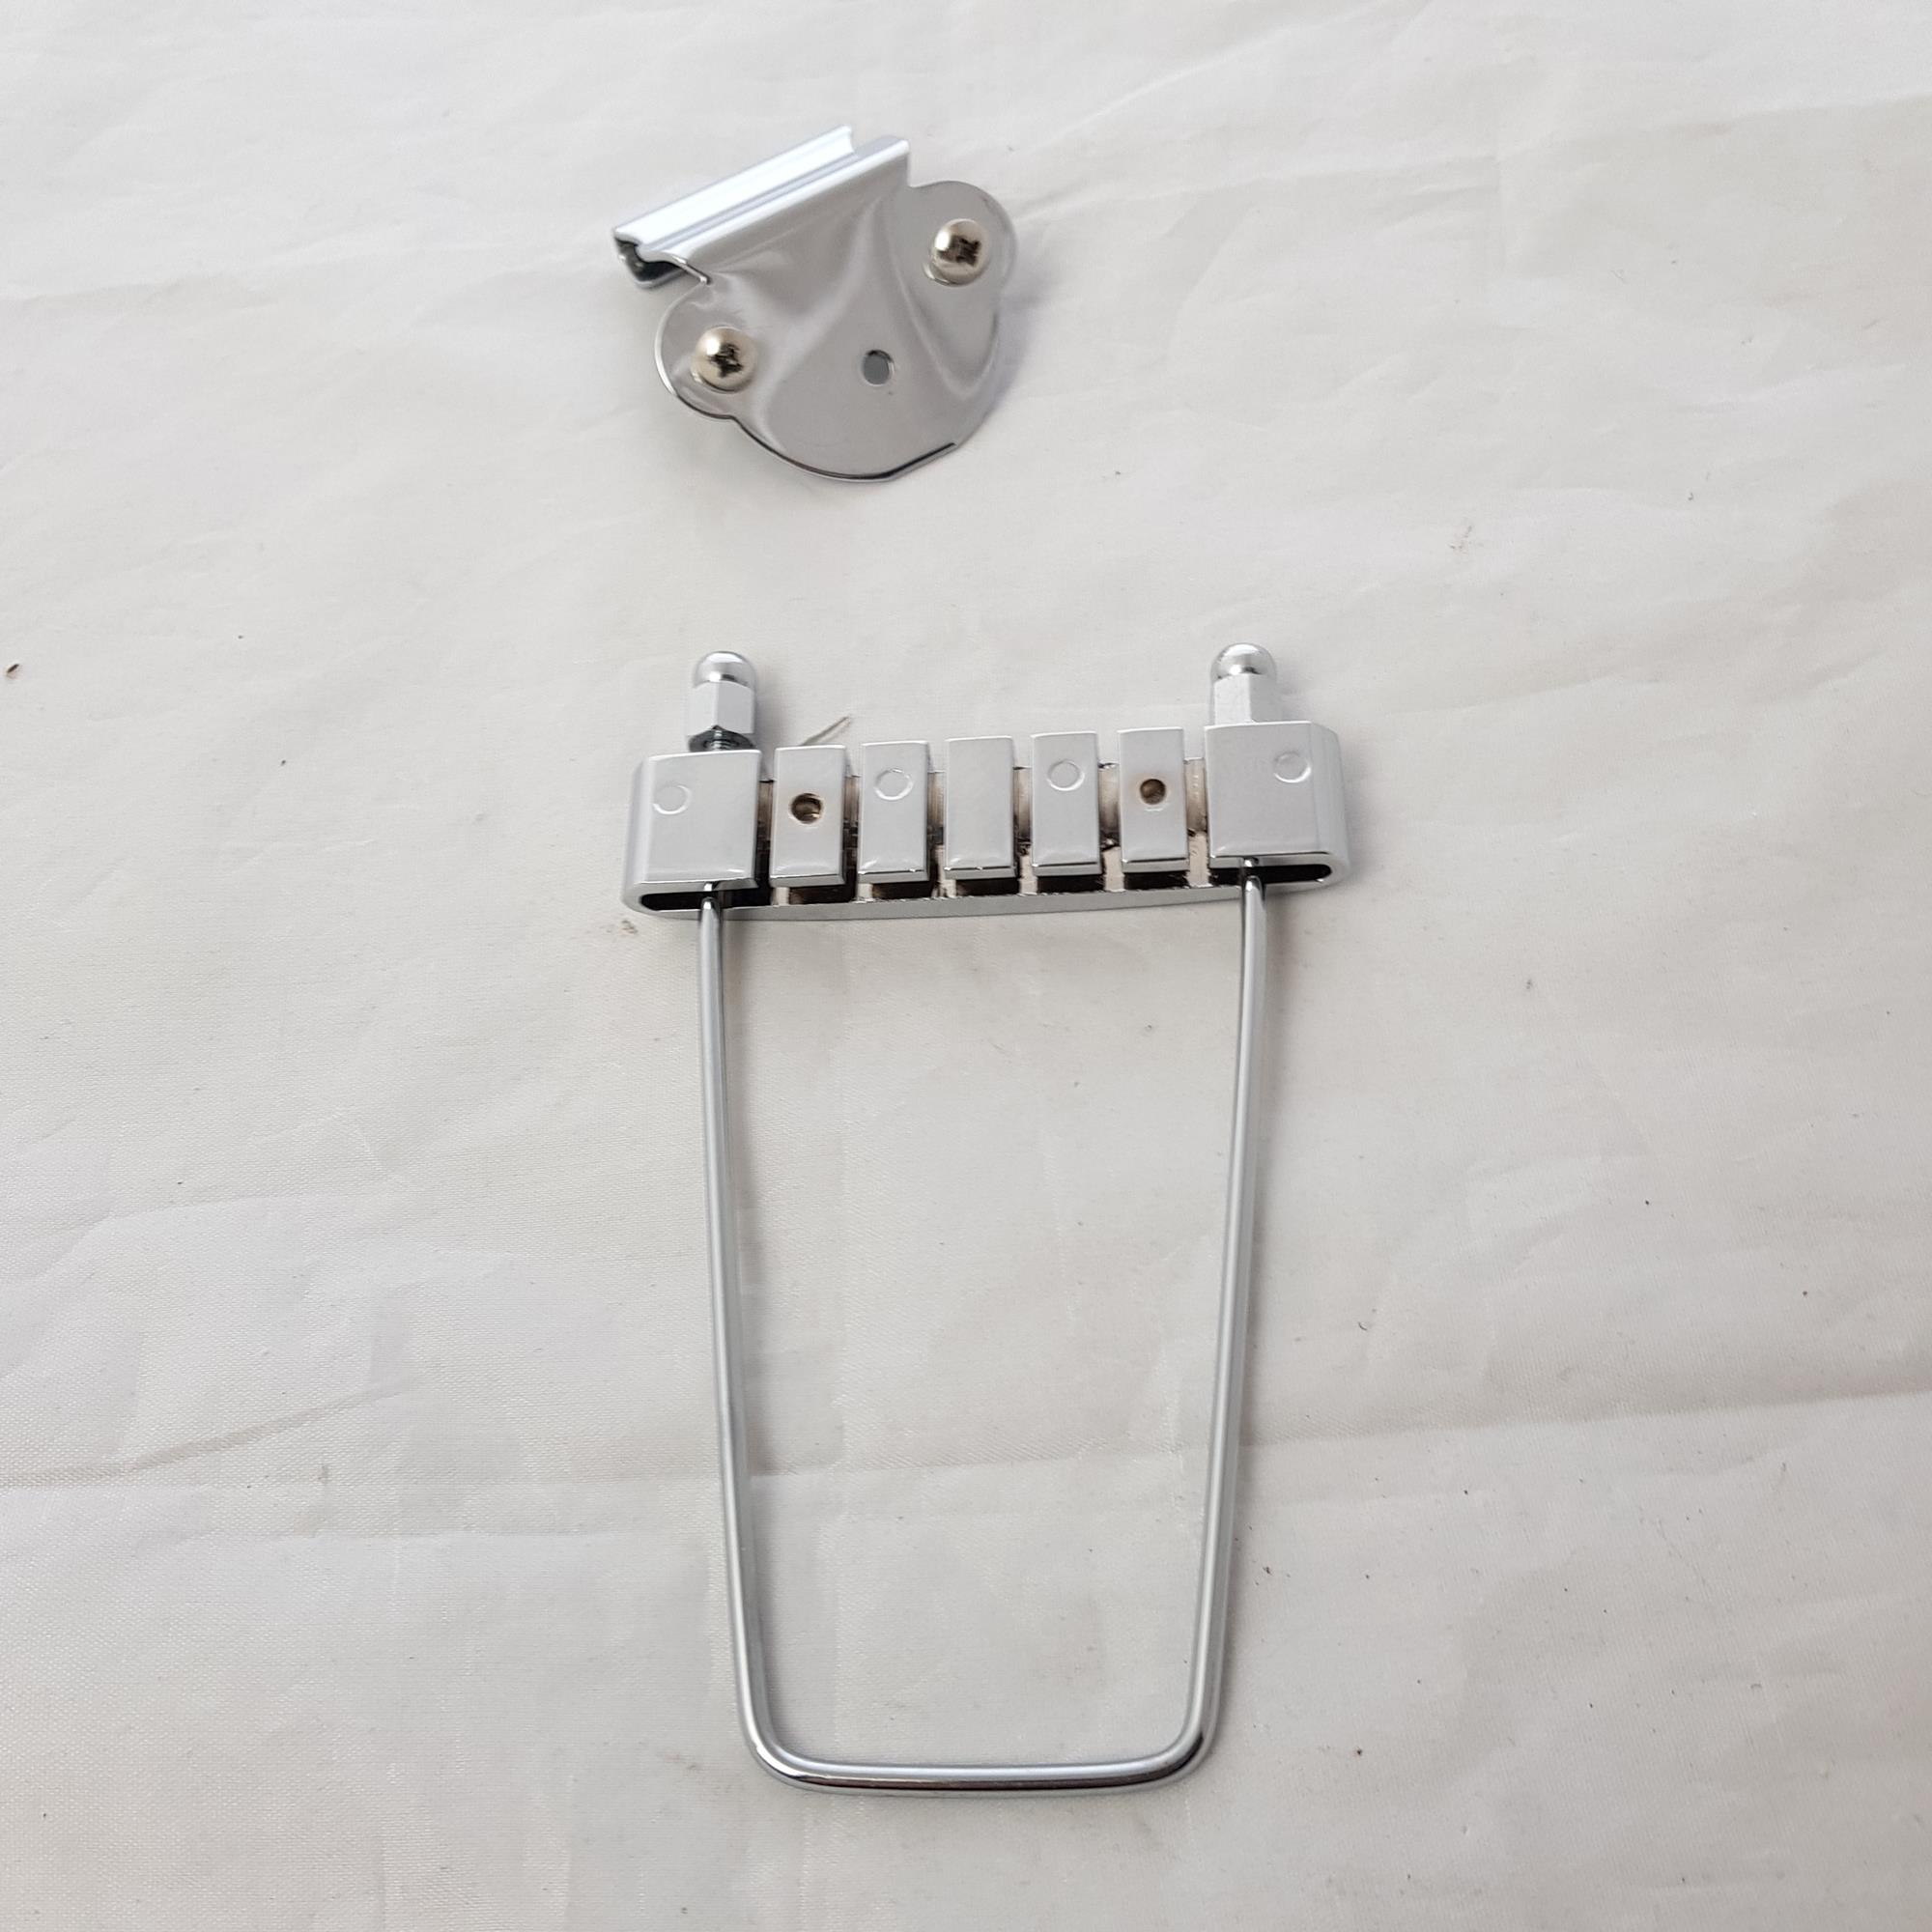 ARCHTOP STOPBAR TRAPEZE TAILPIECE